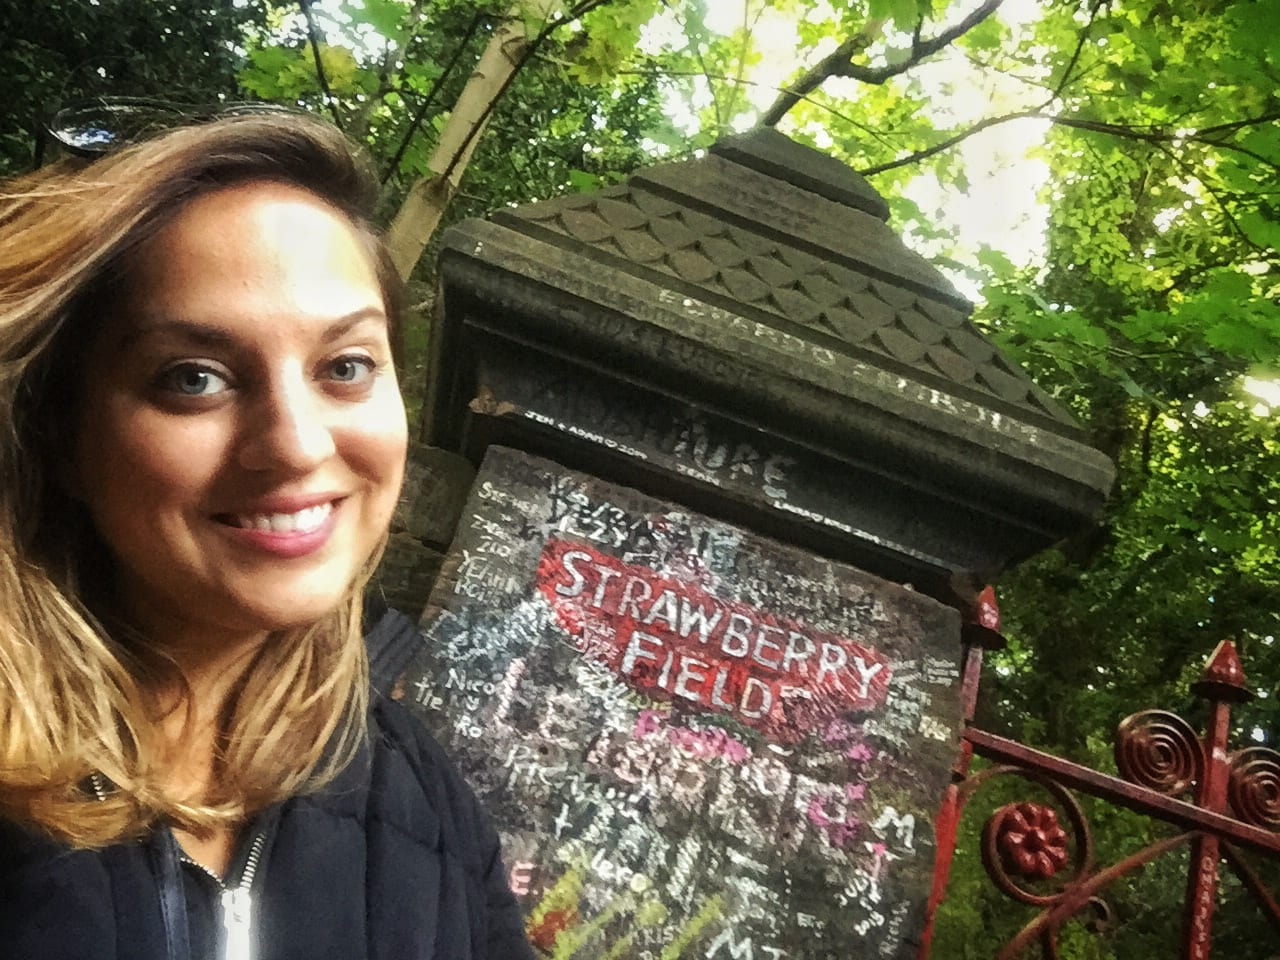 Kate at Strawberry Fields